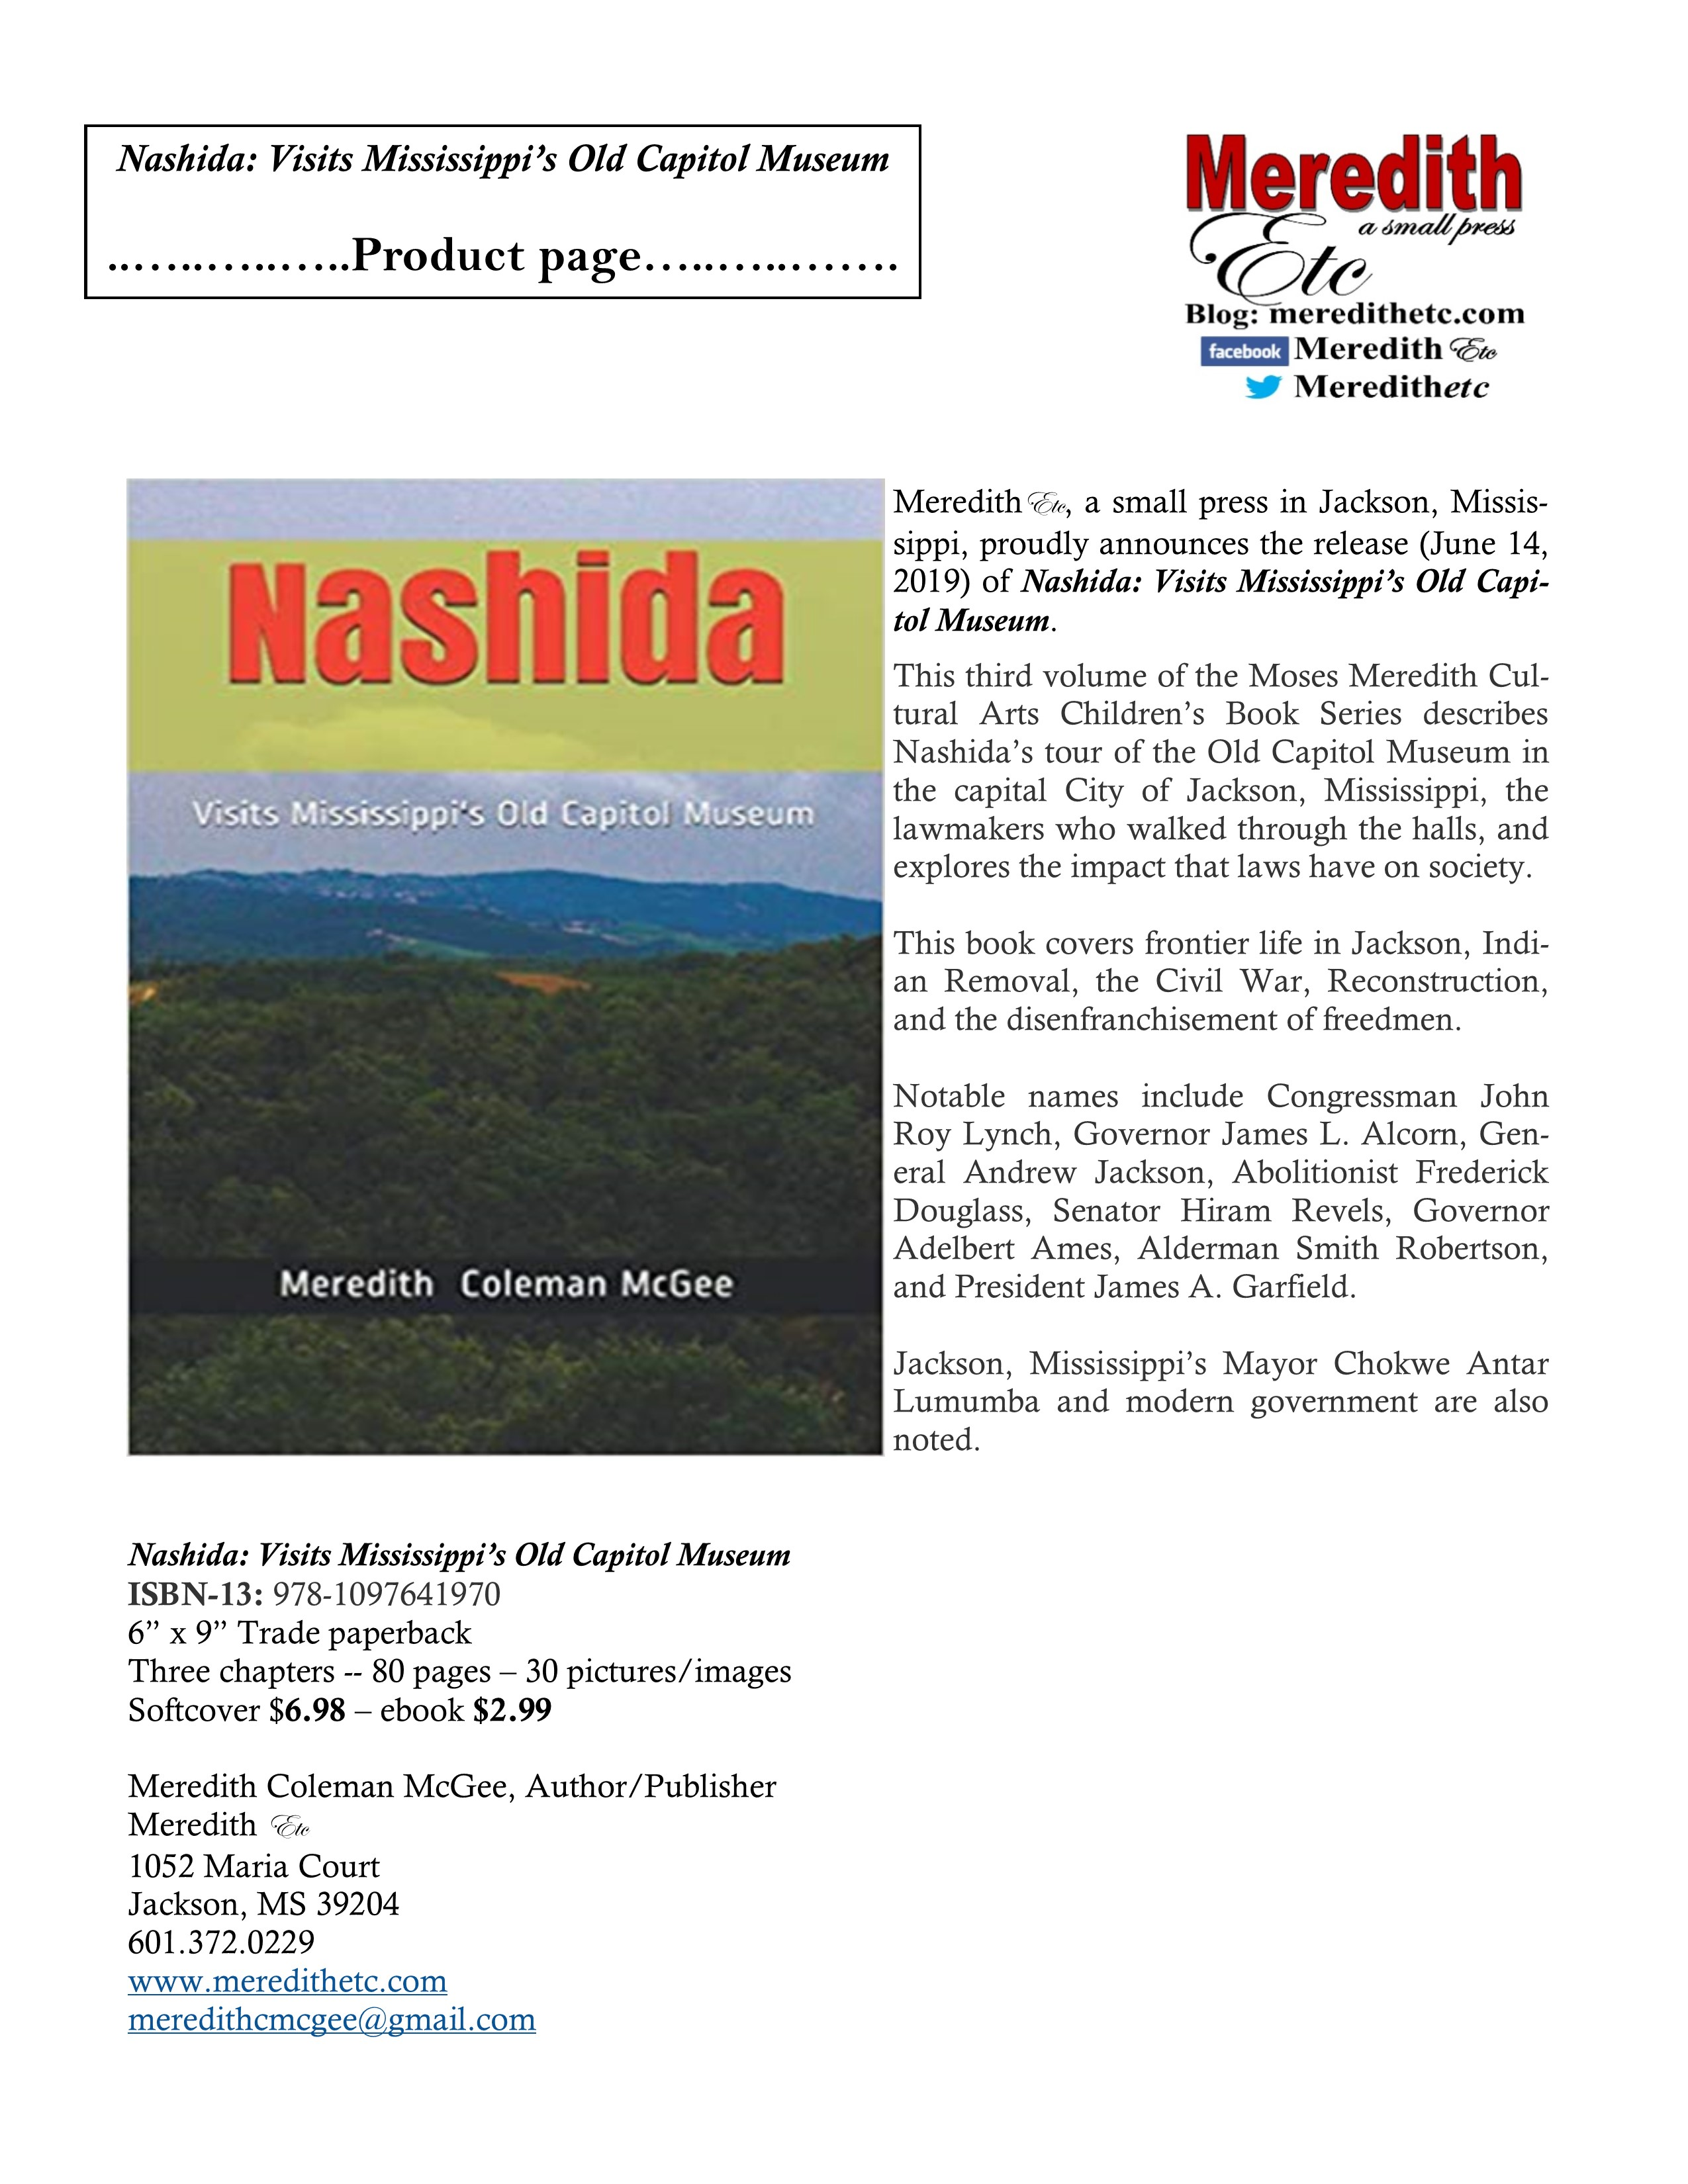 Nashida: Visits Mississippi's Old Capitol Museum  (Moses Meredith Cultural Arts Children's Book Series Vol. 3)